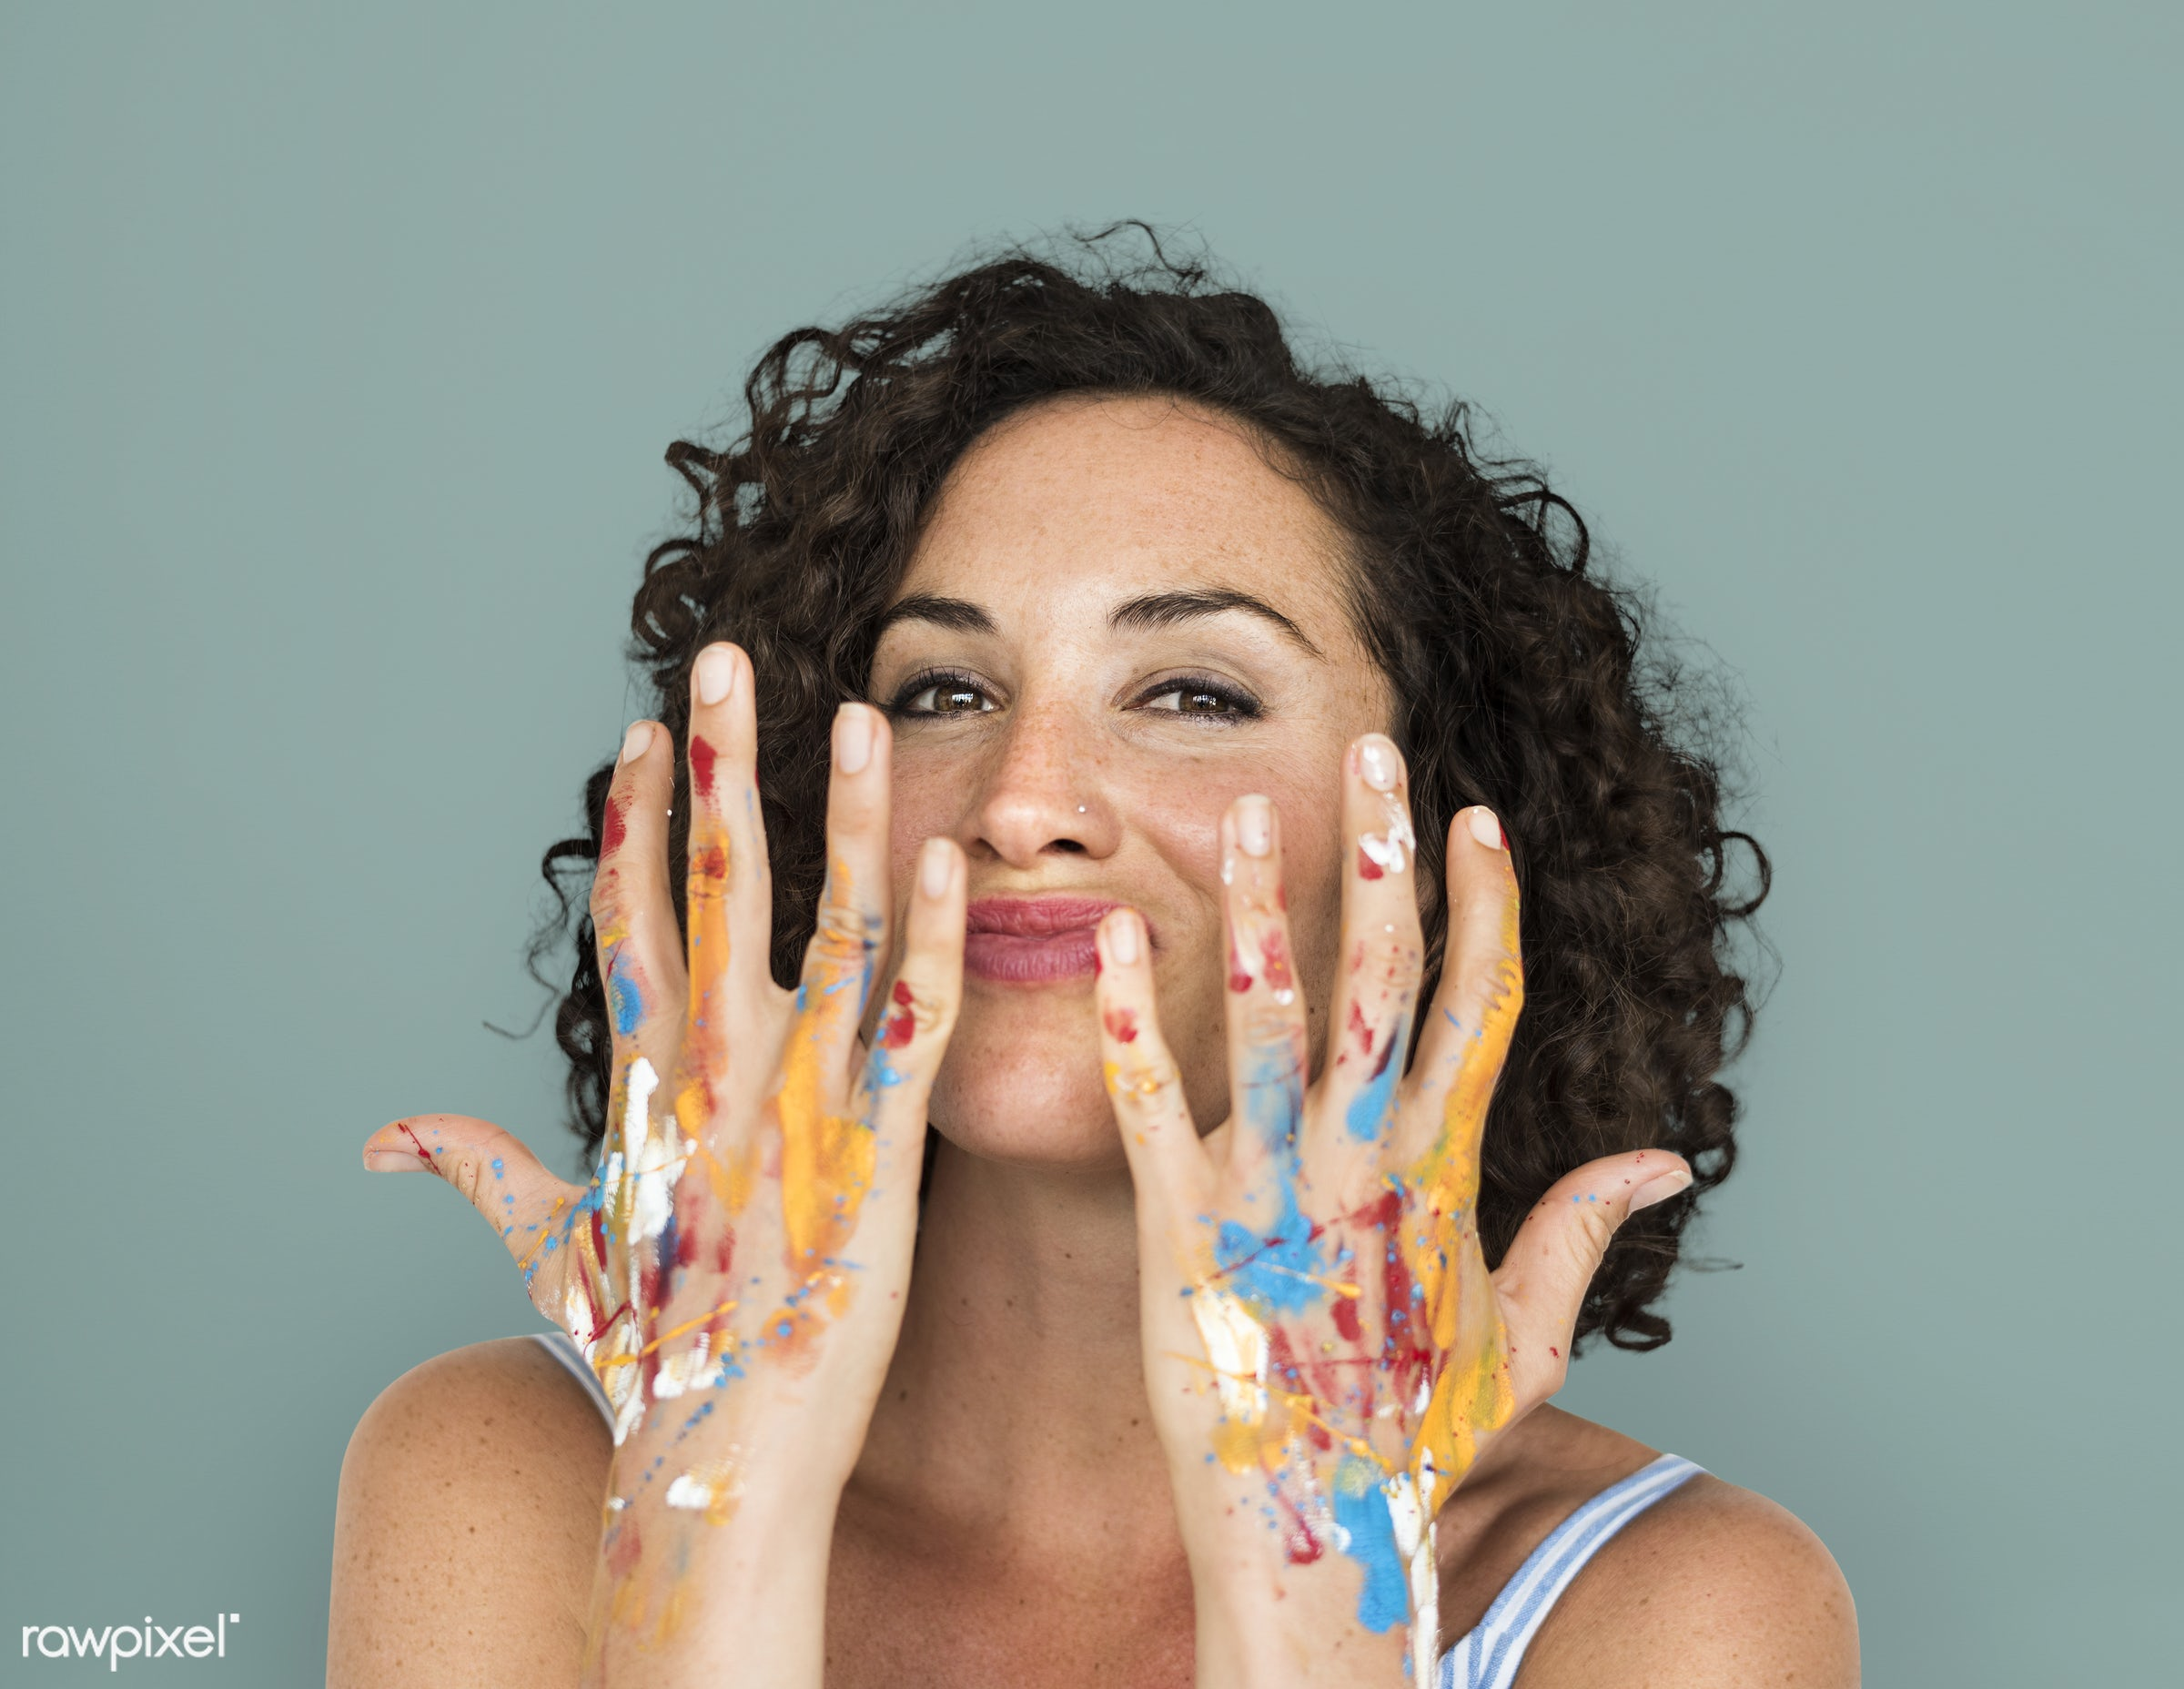 studio, expression, person, arts, curly hairstyle, people, curly, woman, smile, cheerful, smiling, isolated, human hand,...